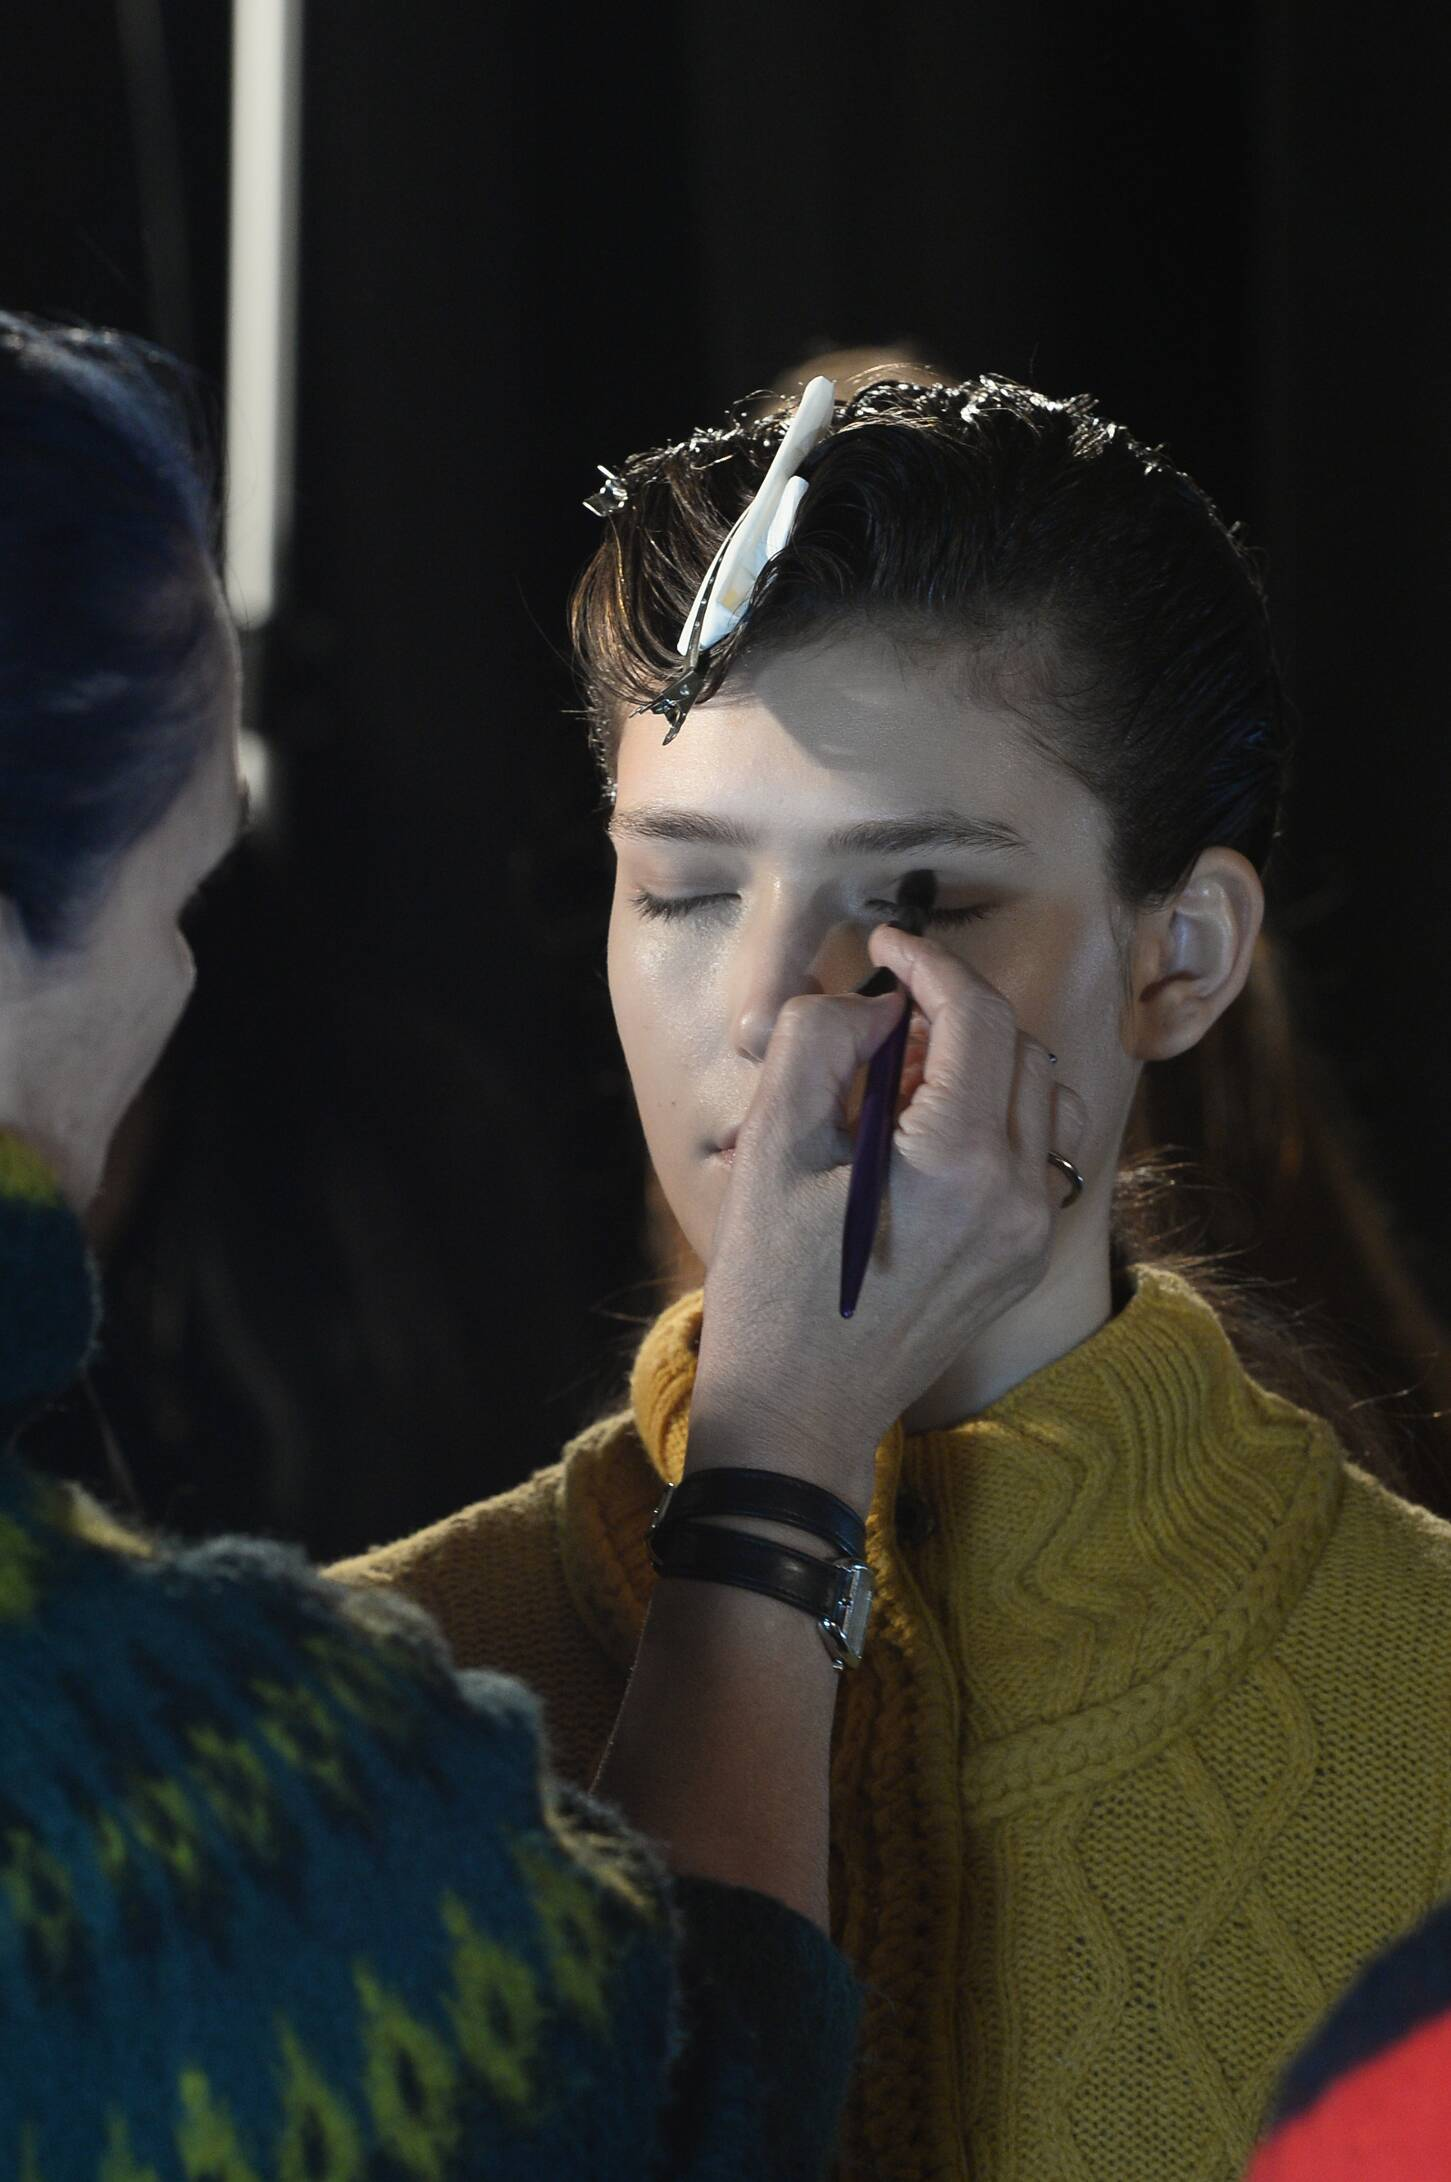 Make Up Diesel Black Gold Backstage Fashion Model